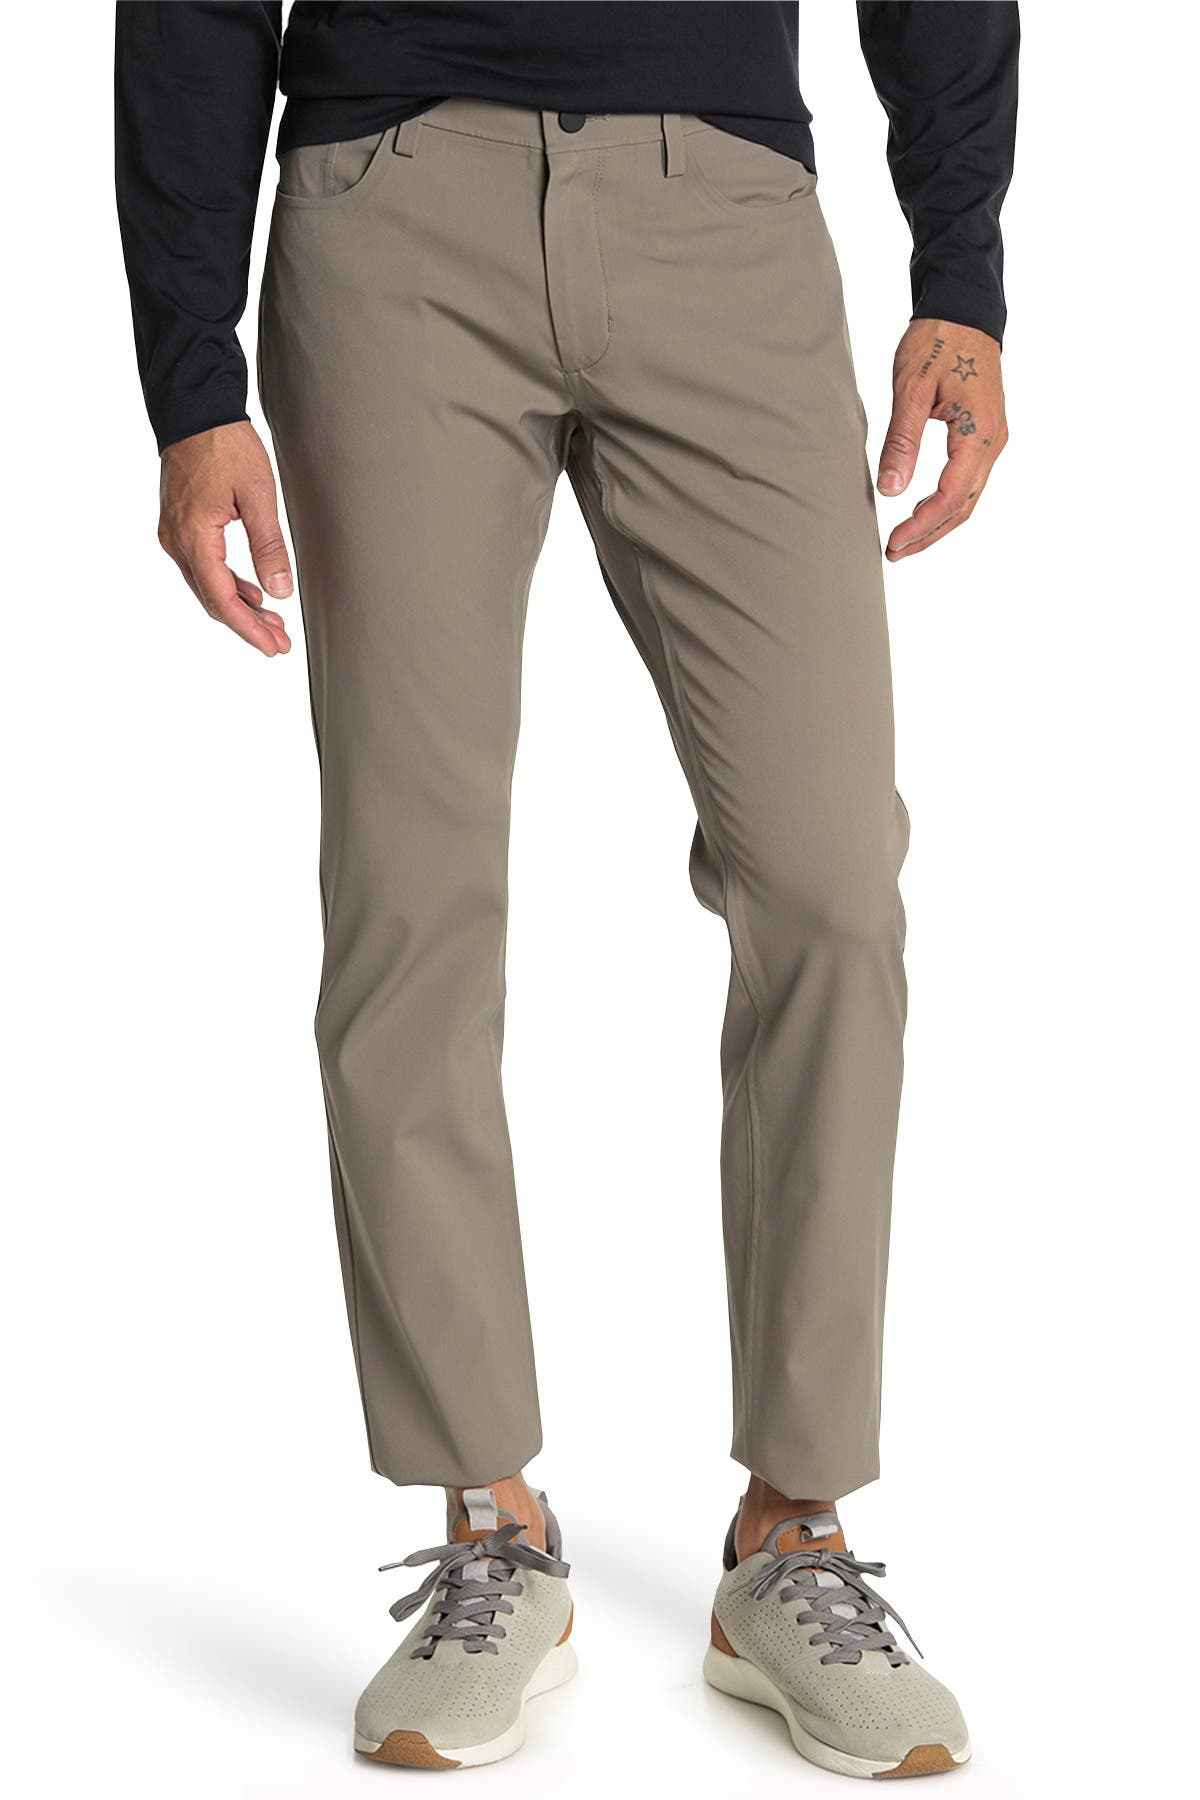 Image of Theory Slim Fit Seamless Pants